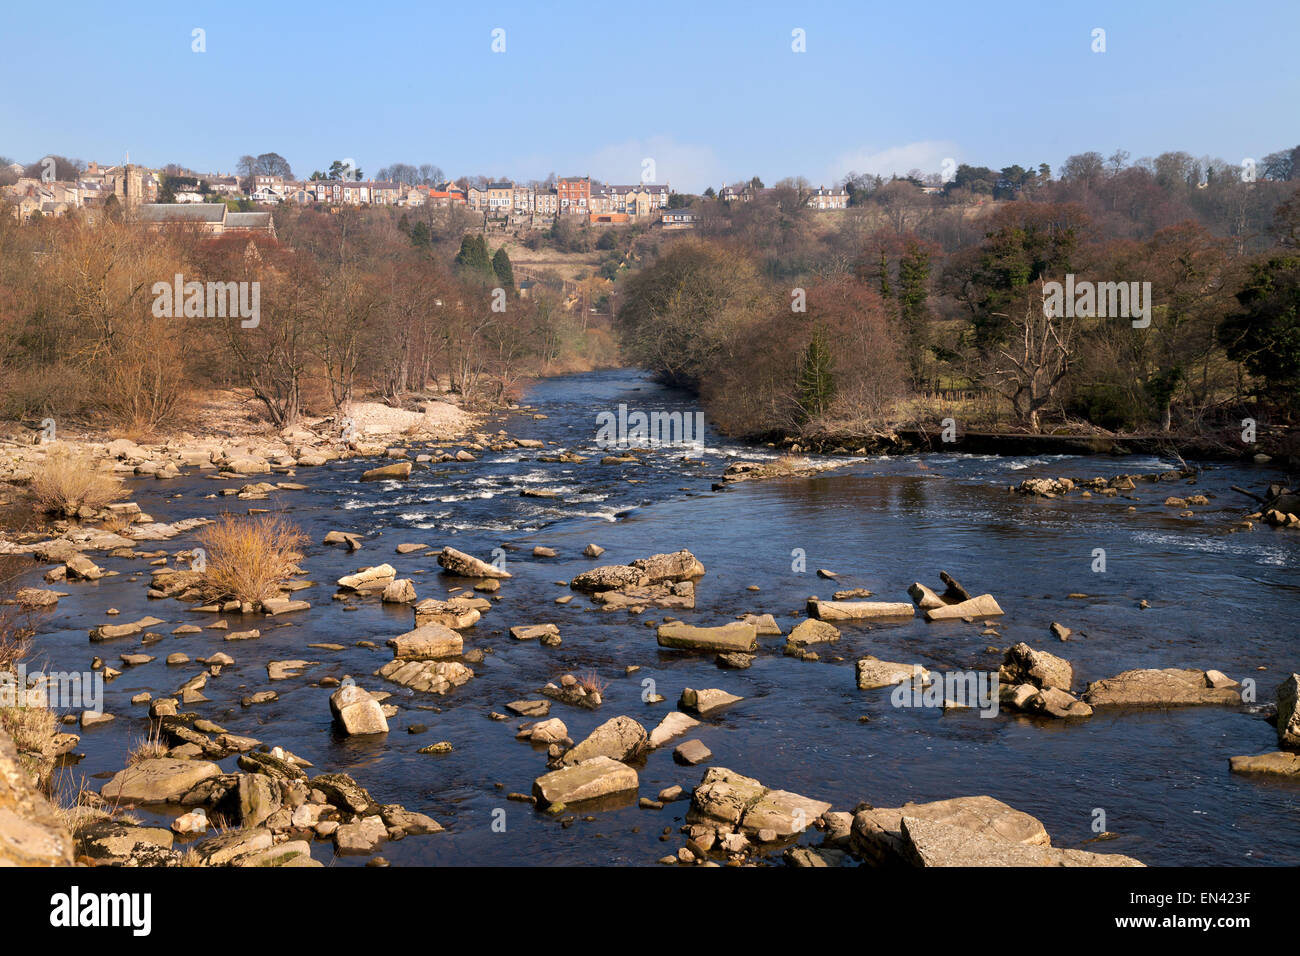 The River Swale and the town of Richmond, Yorkshire, UK - Stock Image